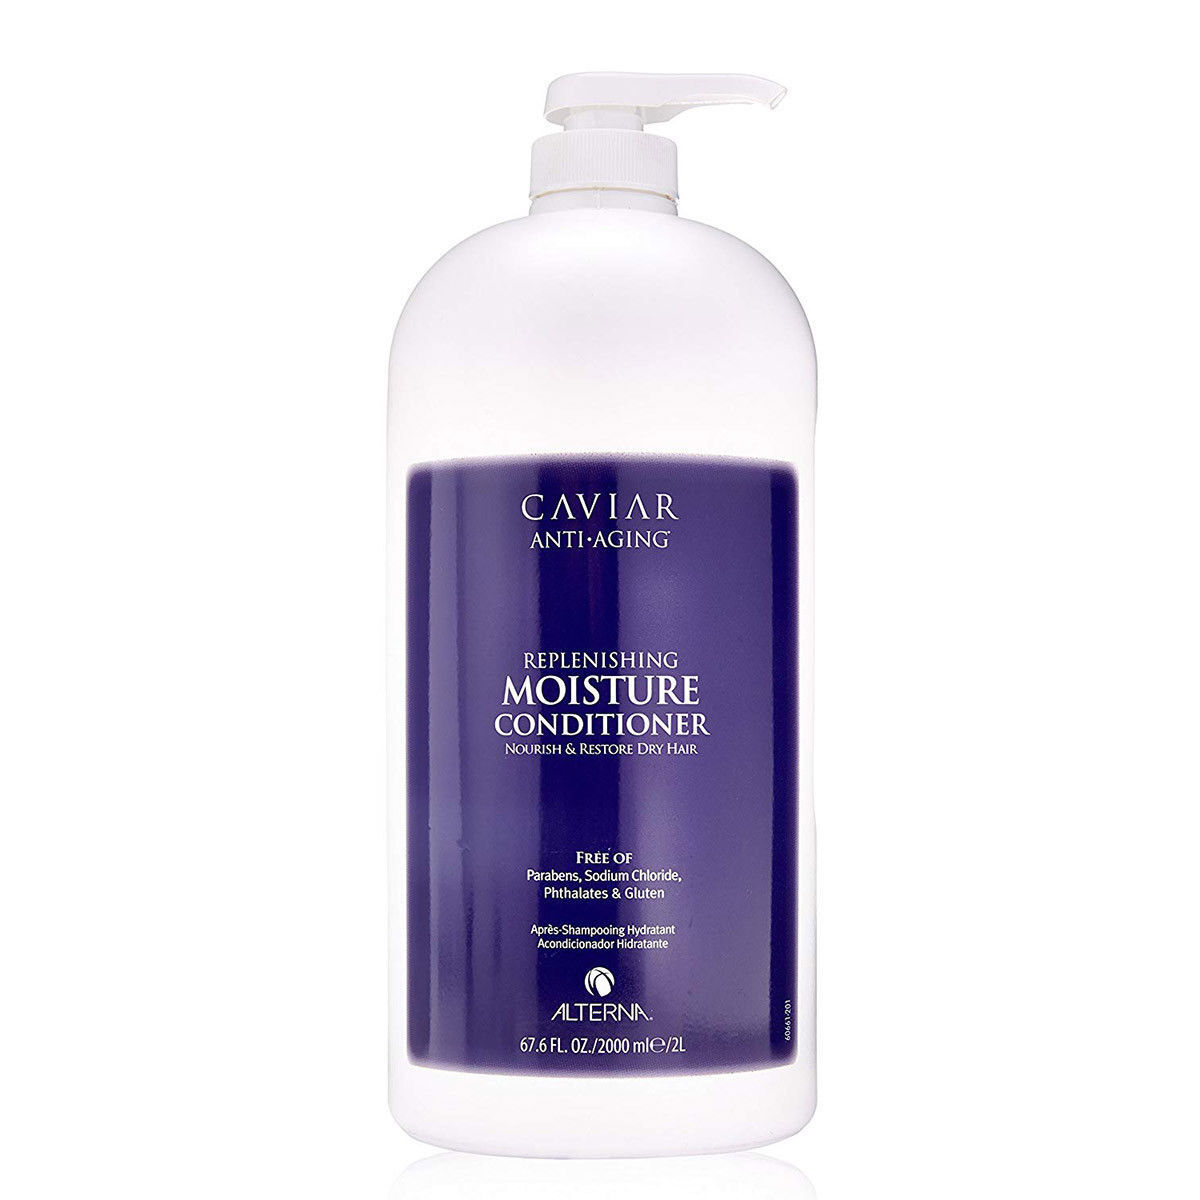 Alterna Caviar Anti-Aging Repleneshing Moisture Conditioner